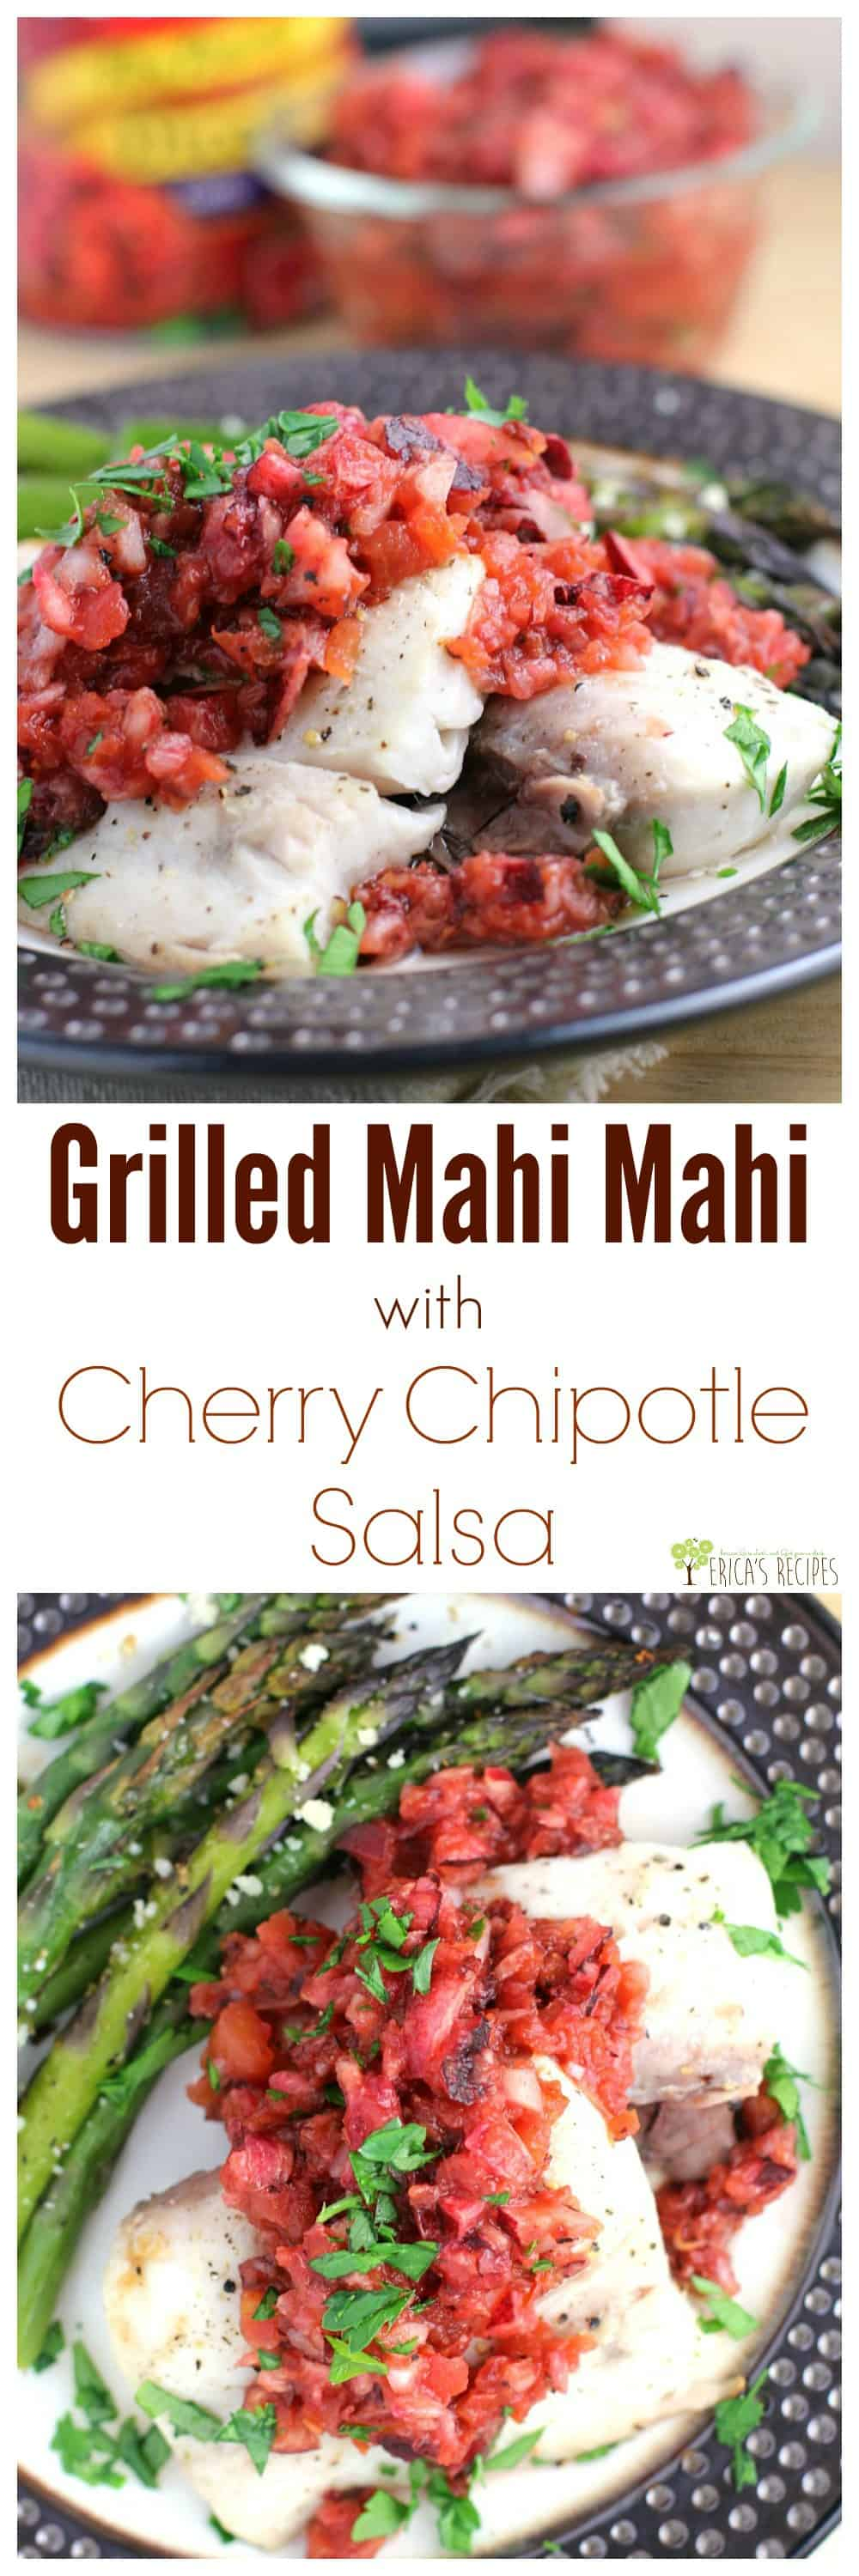 Grilled Mahi Mahi with Cherry Chipotle Salsa from EricasRecipes.com